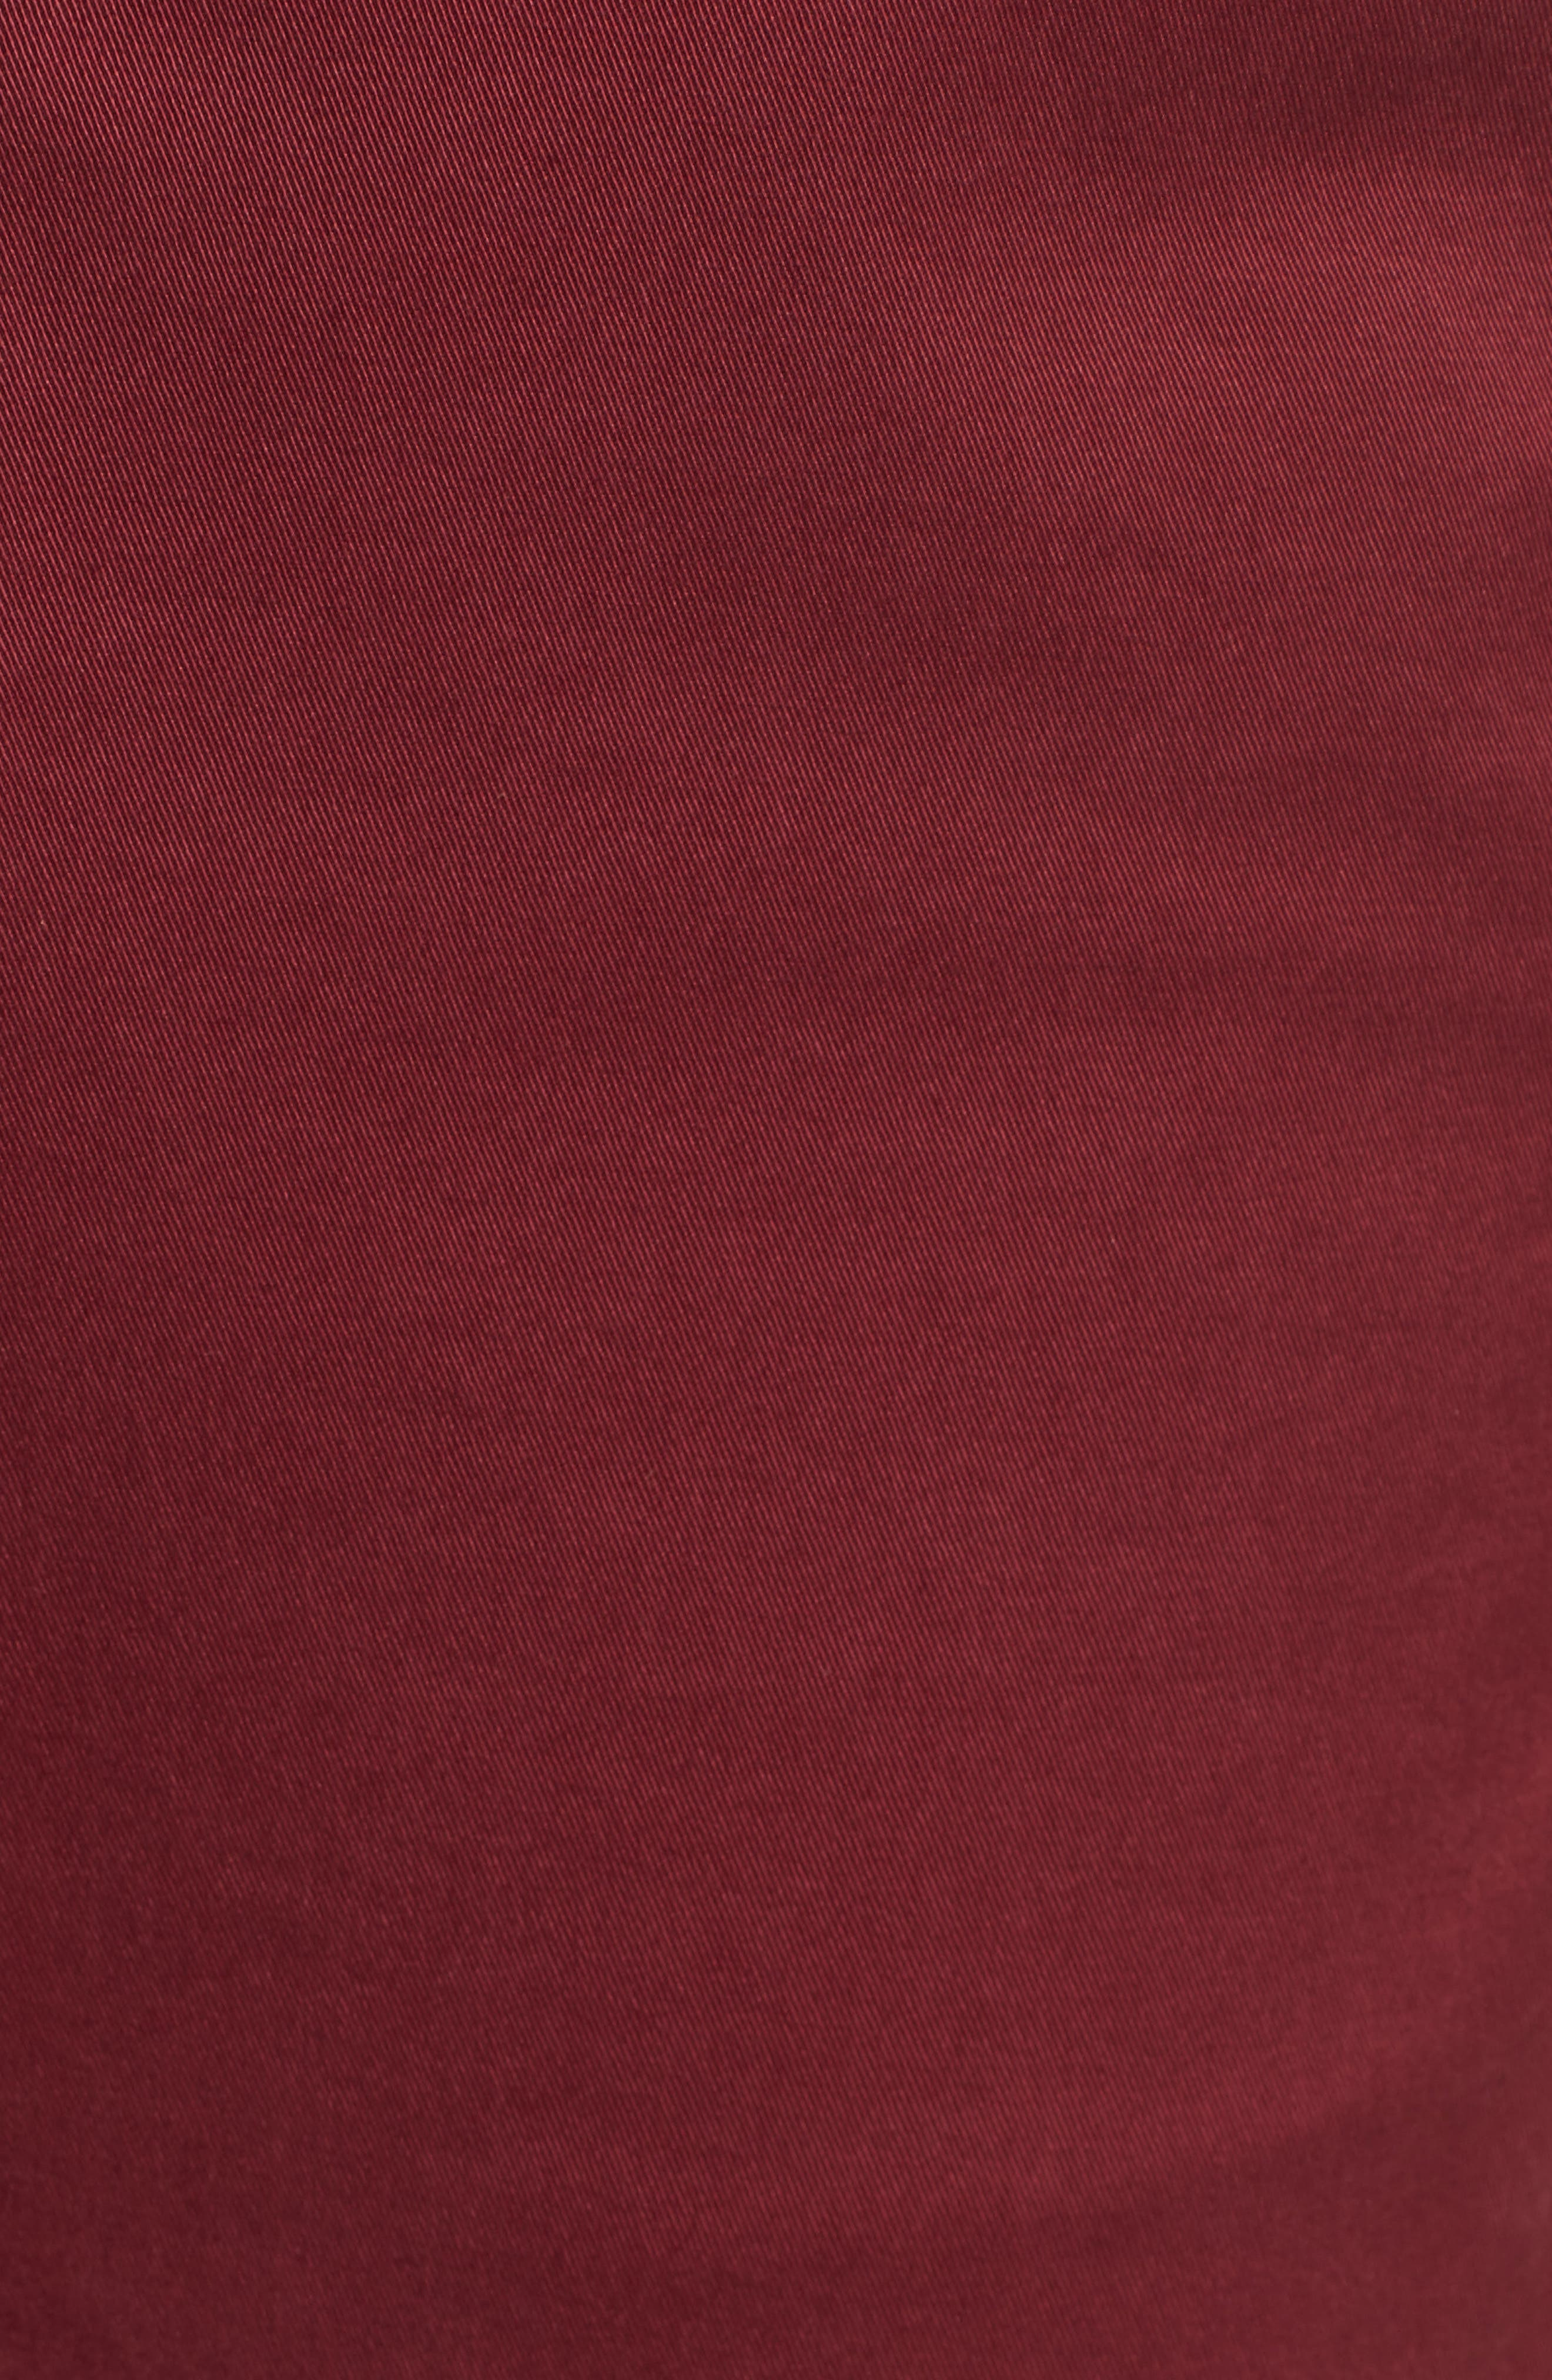 Firebrand Taped Chinos,                             Alternate thumbnail 5, color,                             BORDEAUX